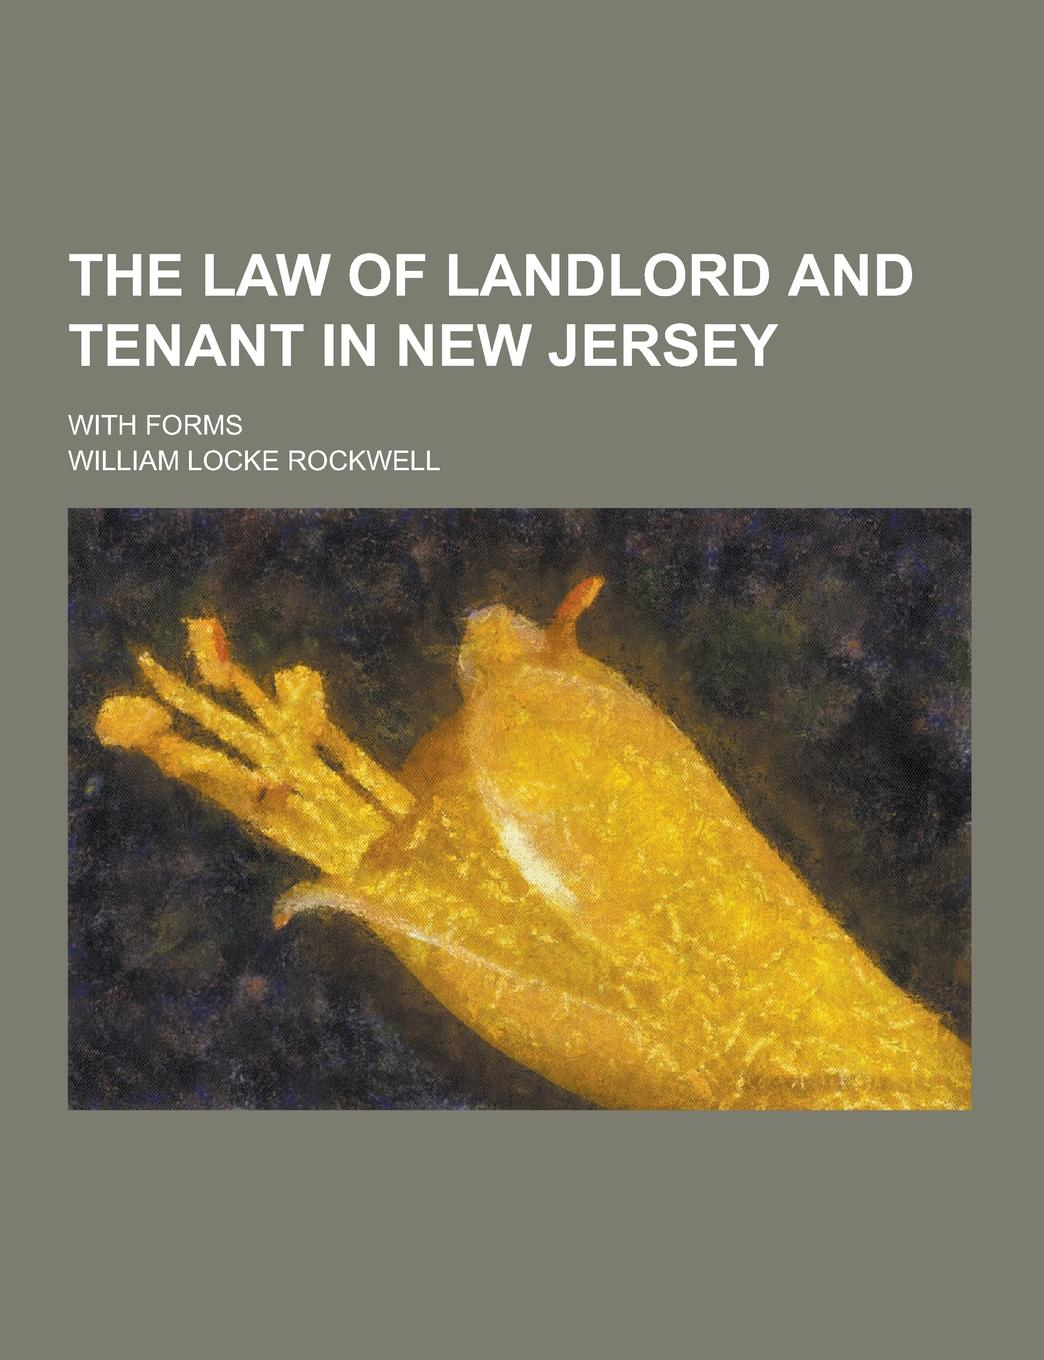 William Locke Rockwell The Law of Landlord and Tenant in New Jersey; With Forms цена